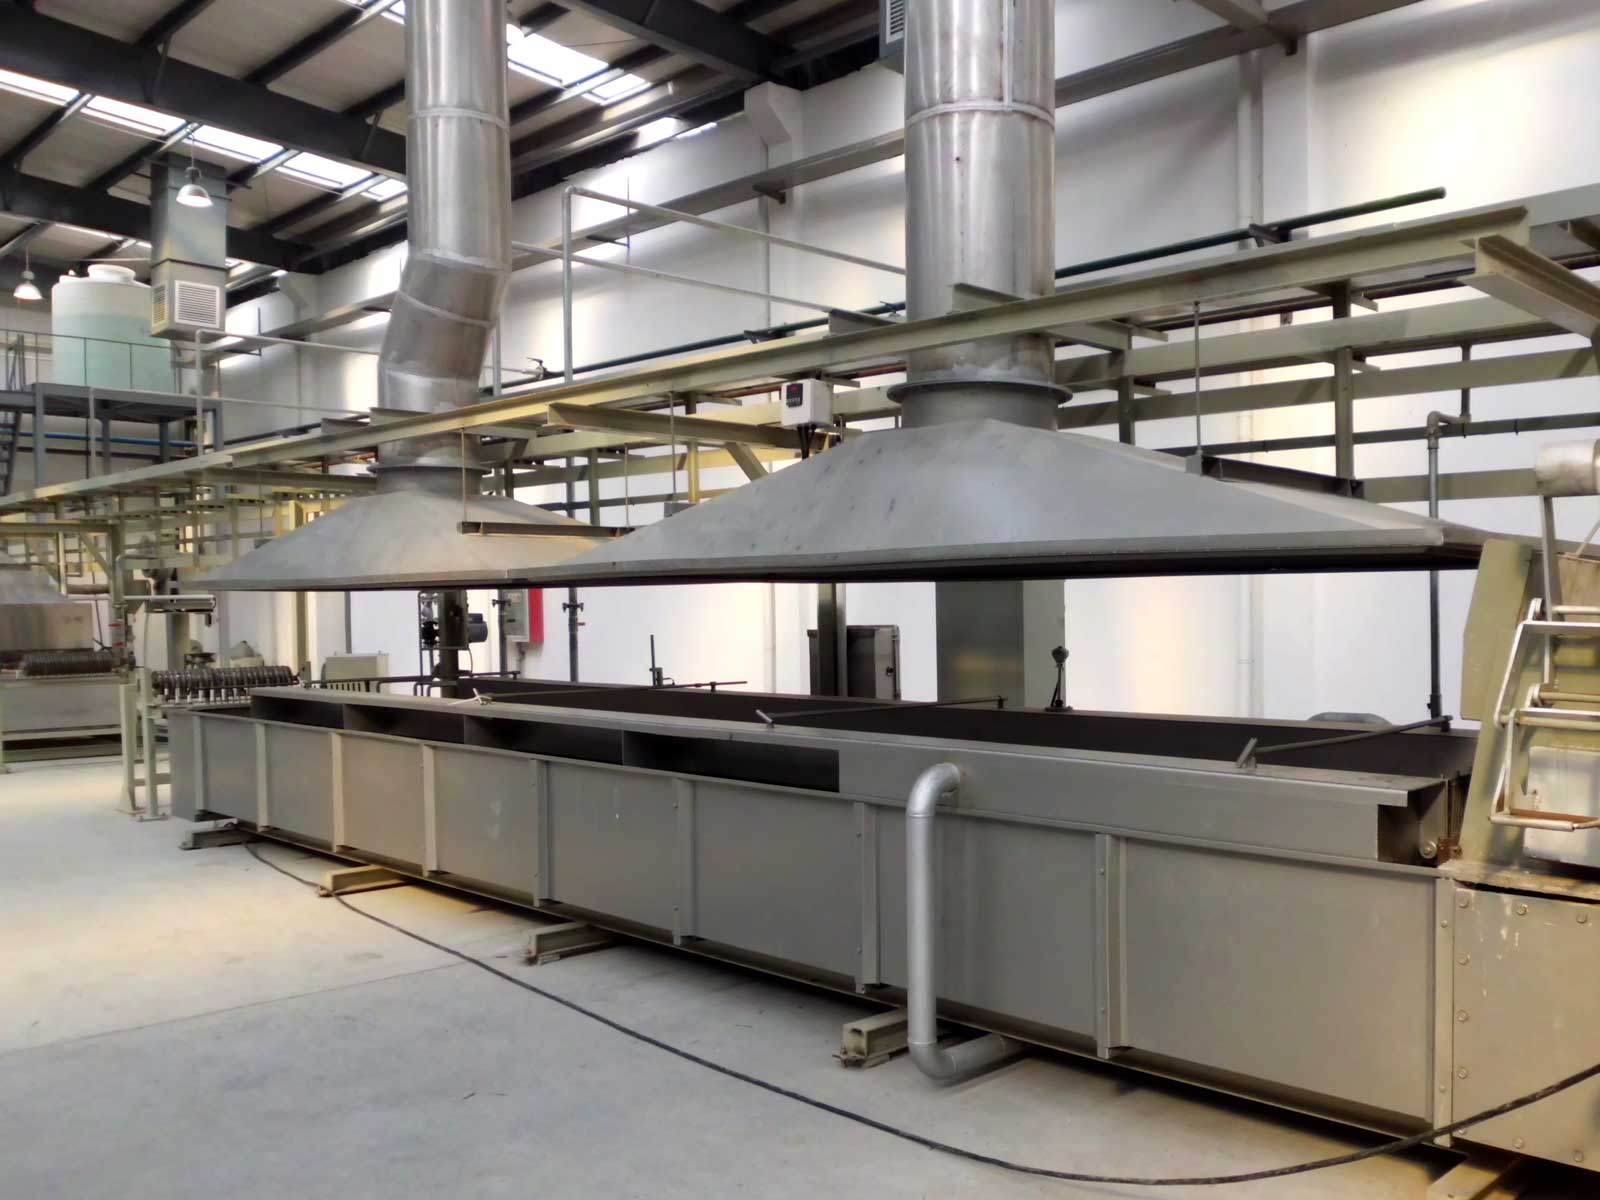 hot dip galvanizing line appearance